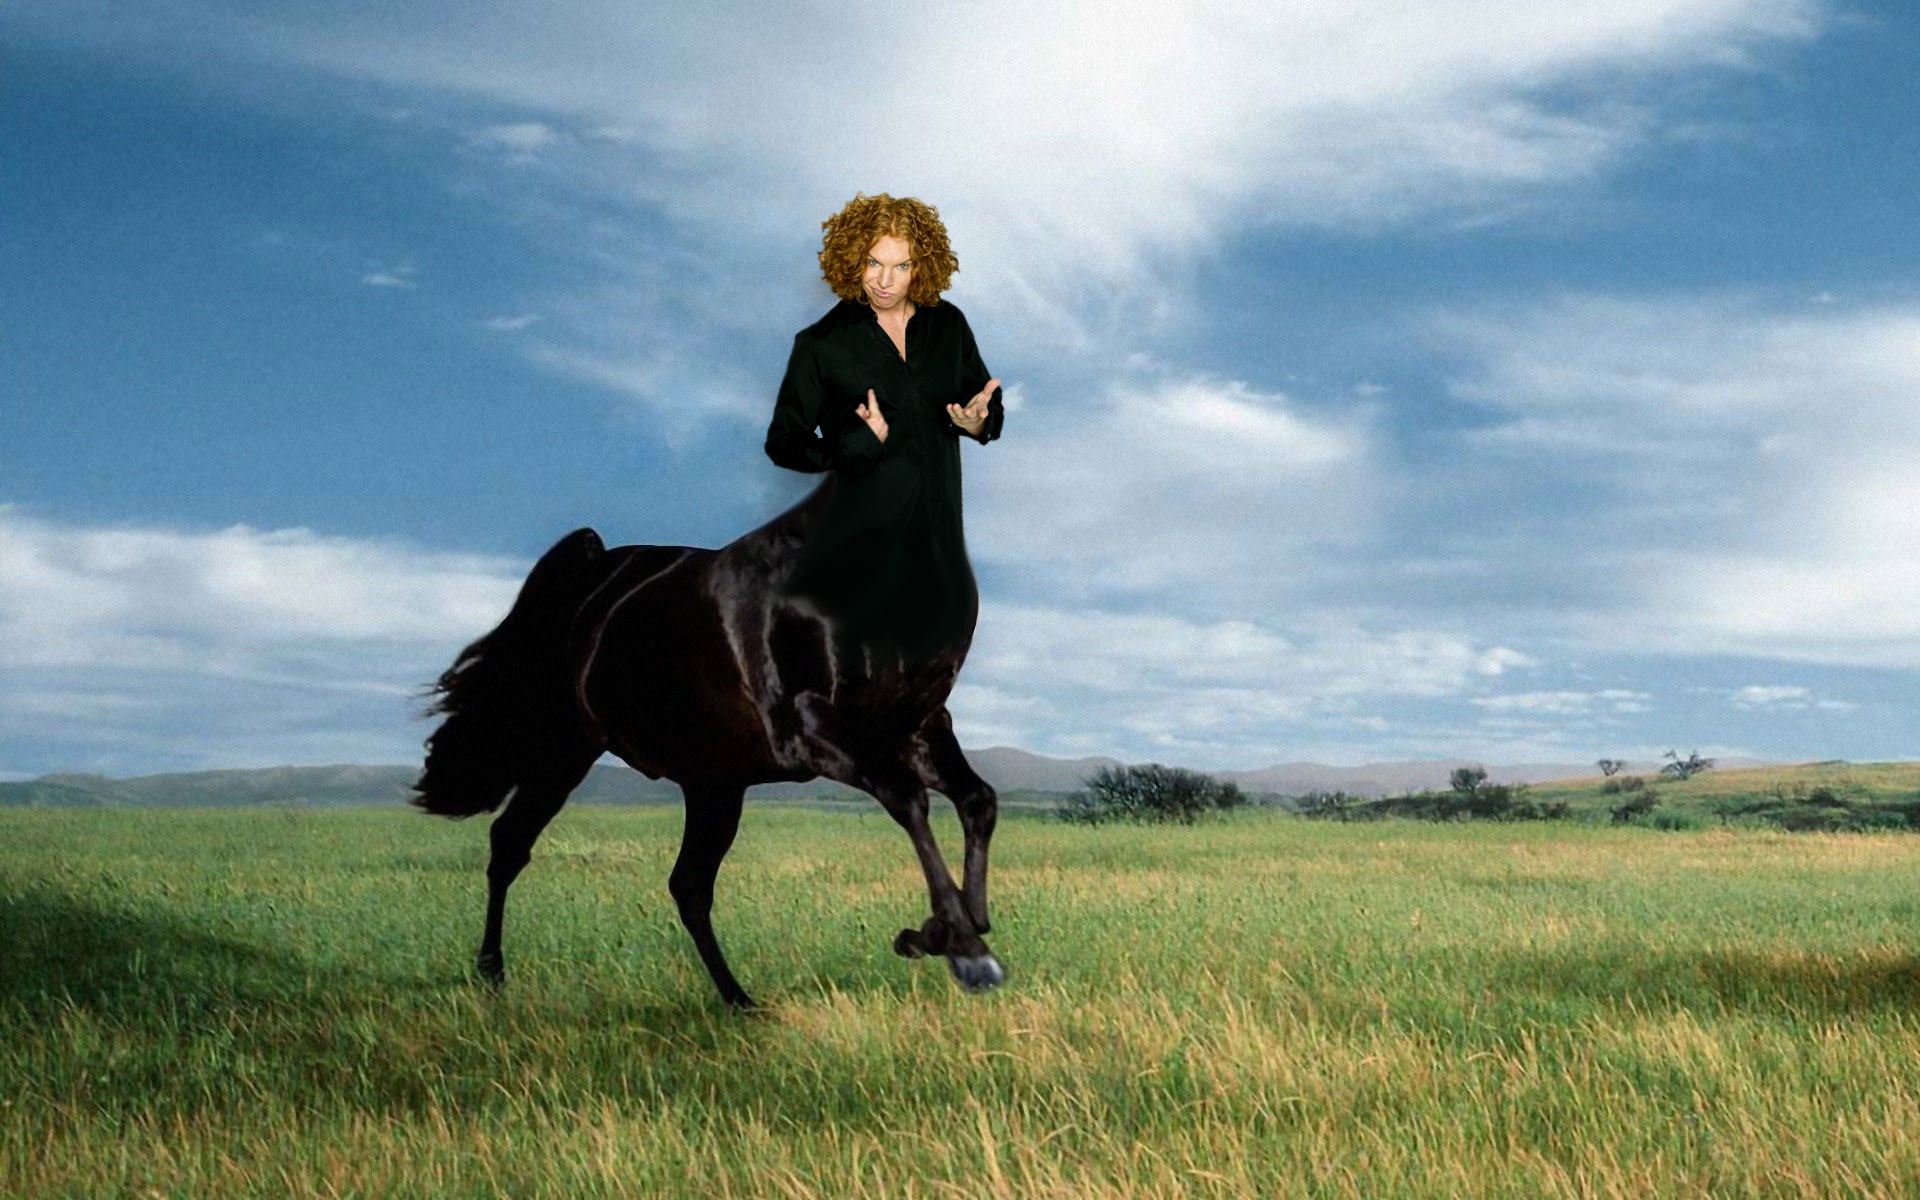 Yay or neigh? Here is what we imagine a 'Centaur Top' to look like.